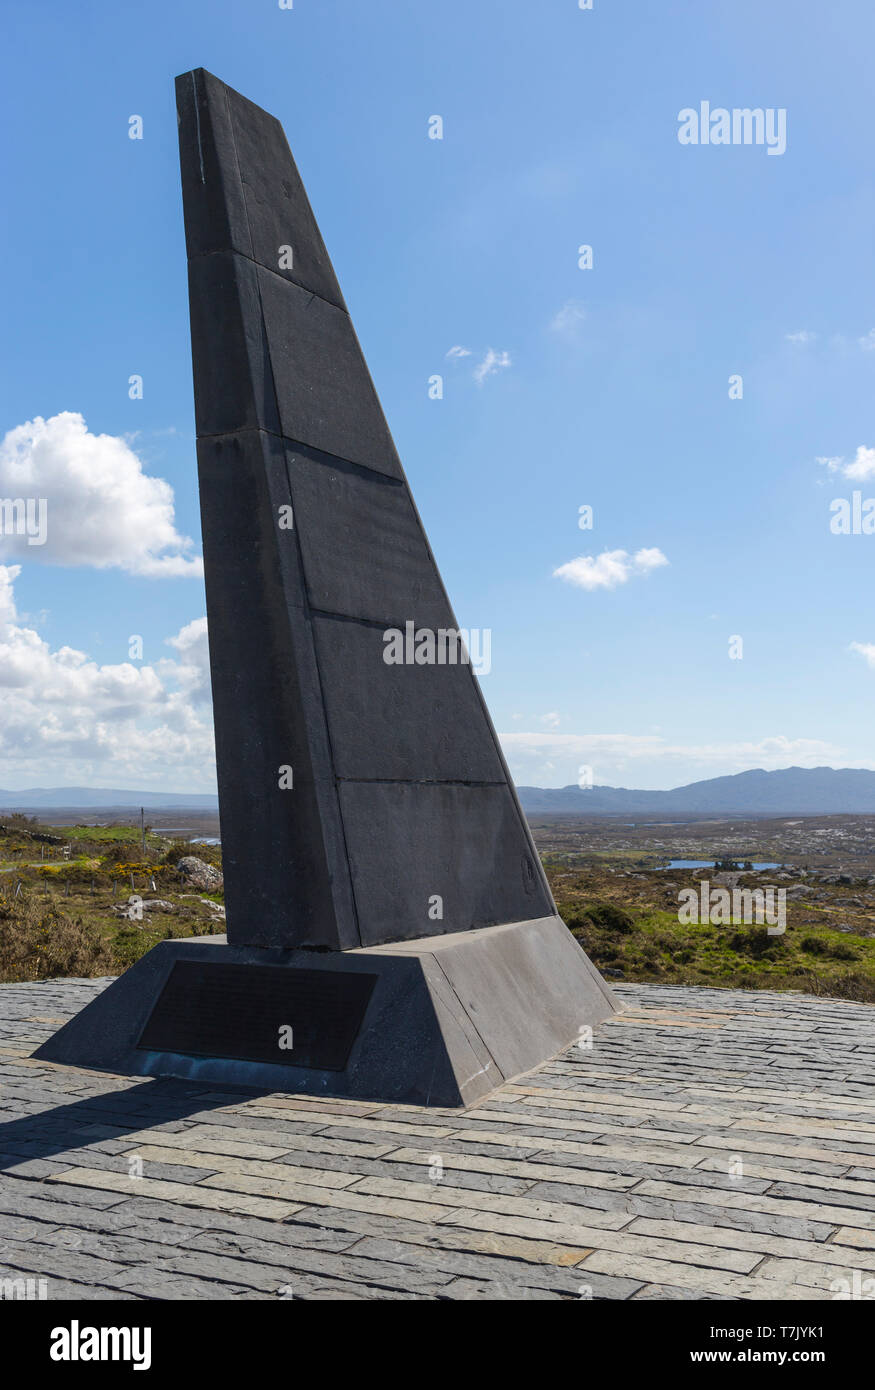 monument commemorating Alcock and Brown first non stop transatlantic flight in June 1919 - Stock Image